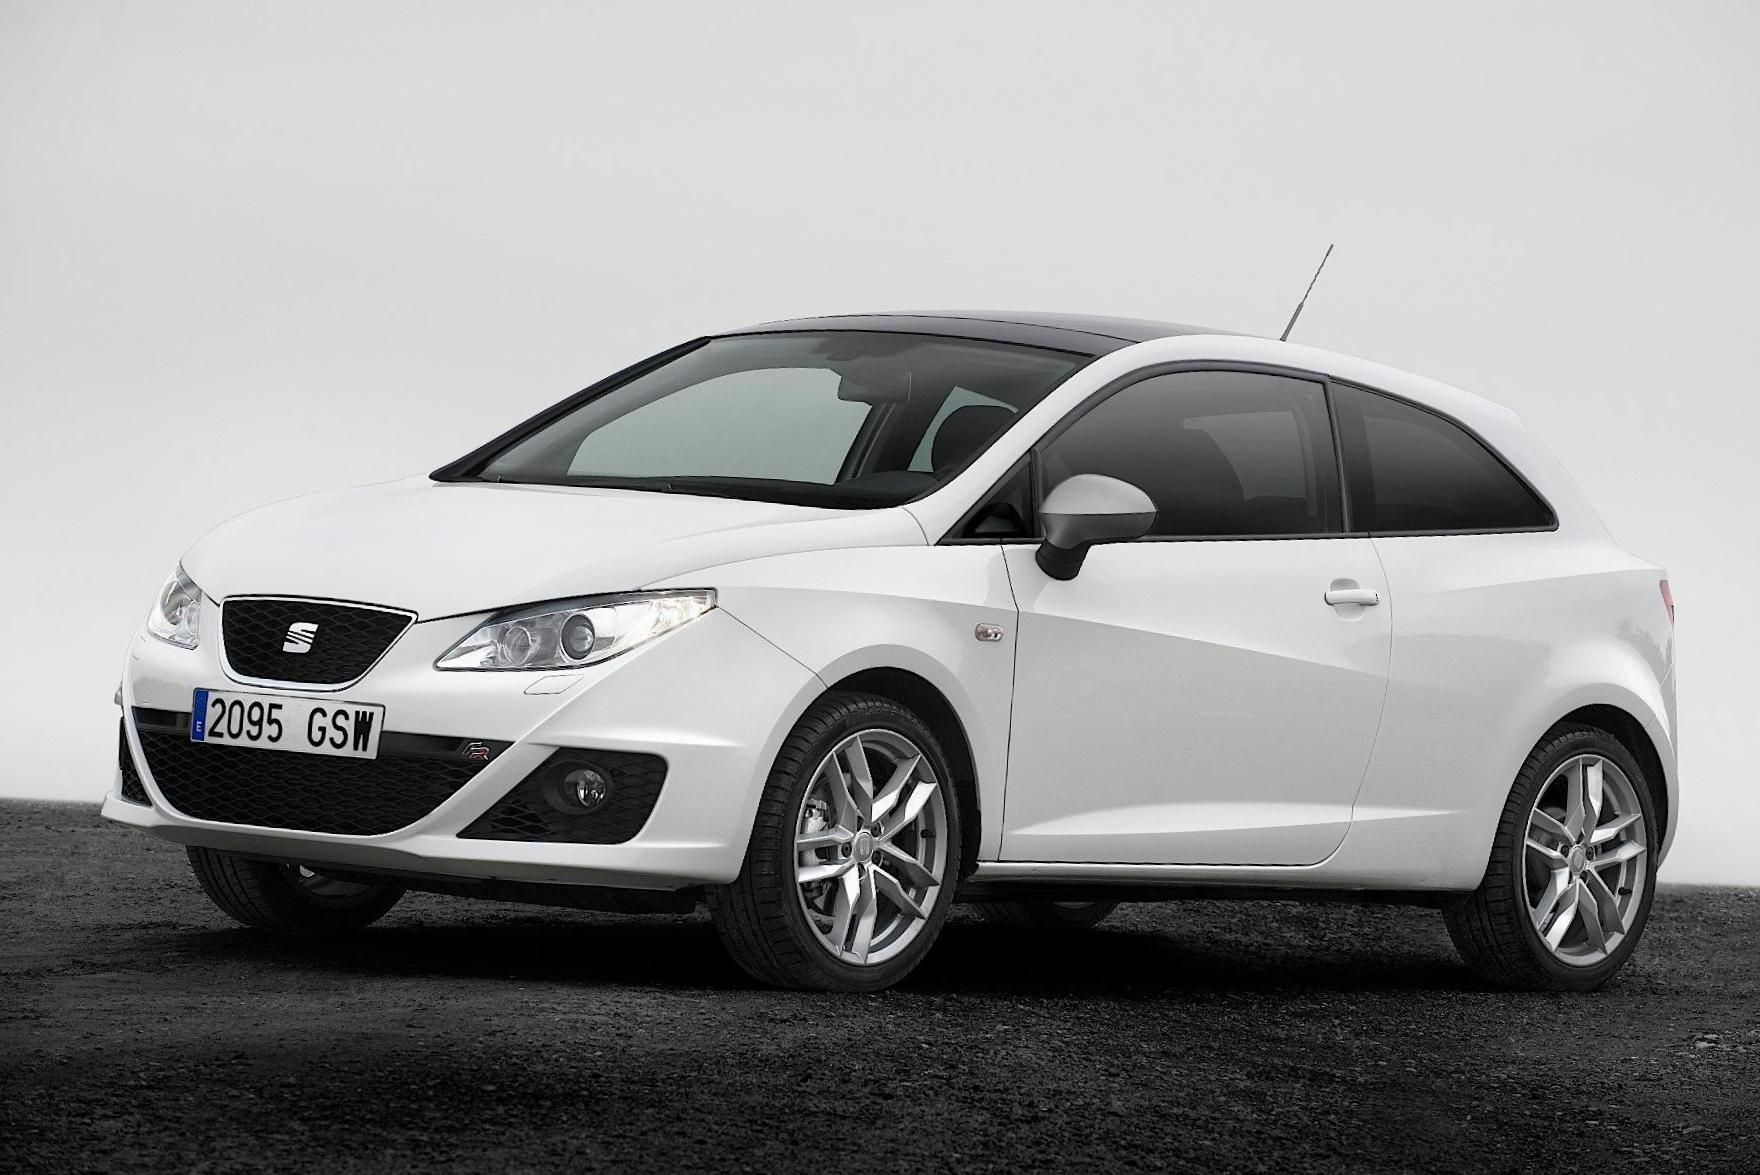 Seat Ibiza SC FR used - http://autotras.com